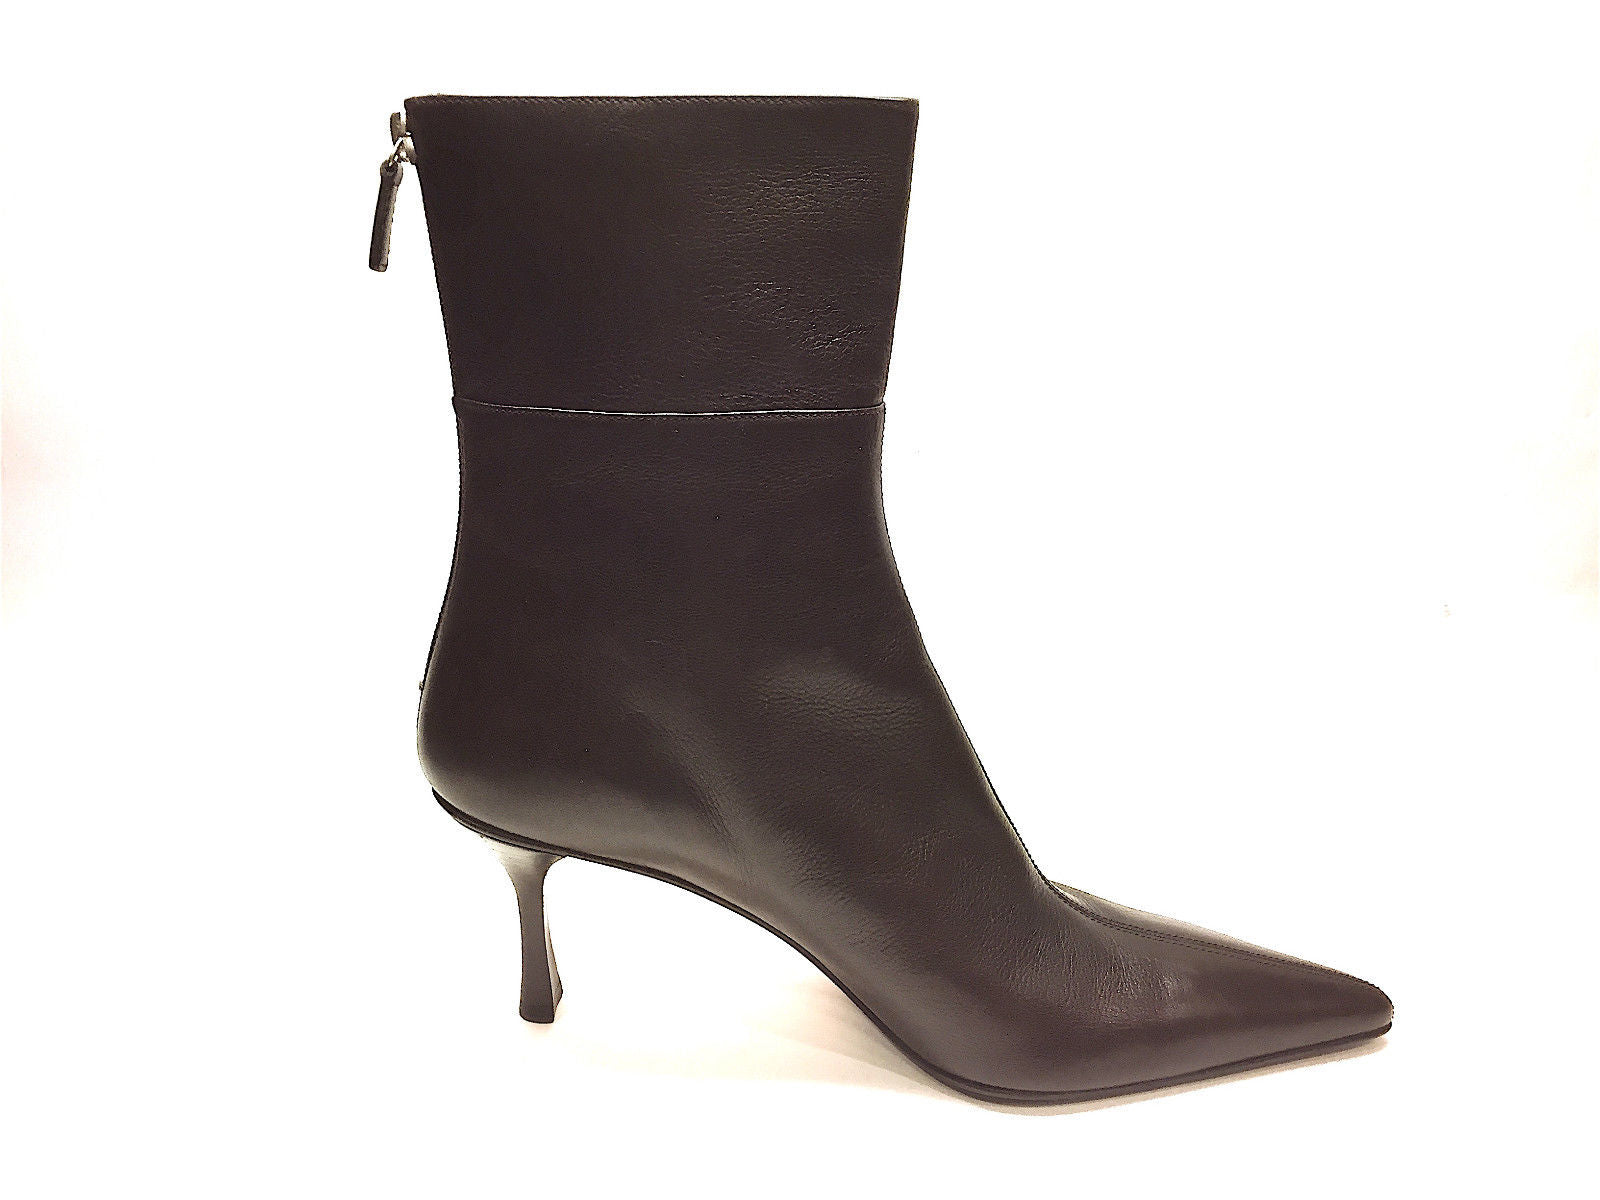 6fc0c3a73 bisbiz.com GUCCI Brown Leather Pointed-Toe Heel Ankle Boots Booties Size:  9.5 ...